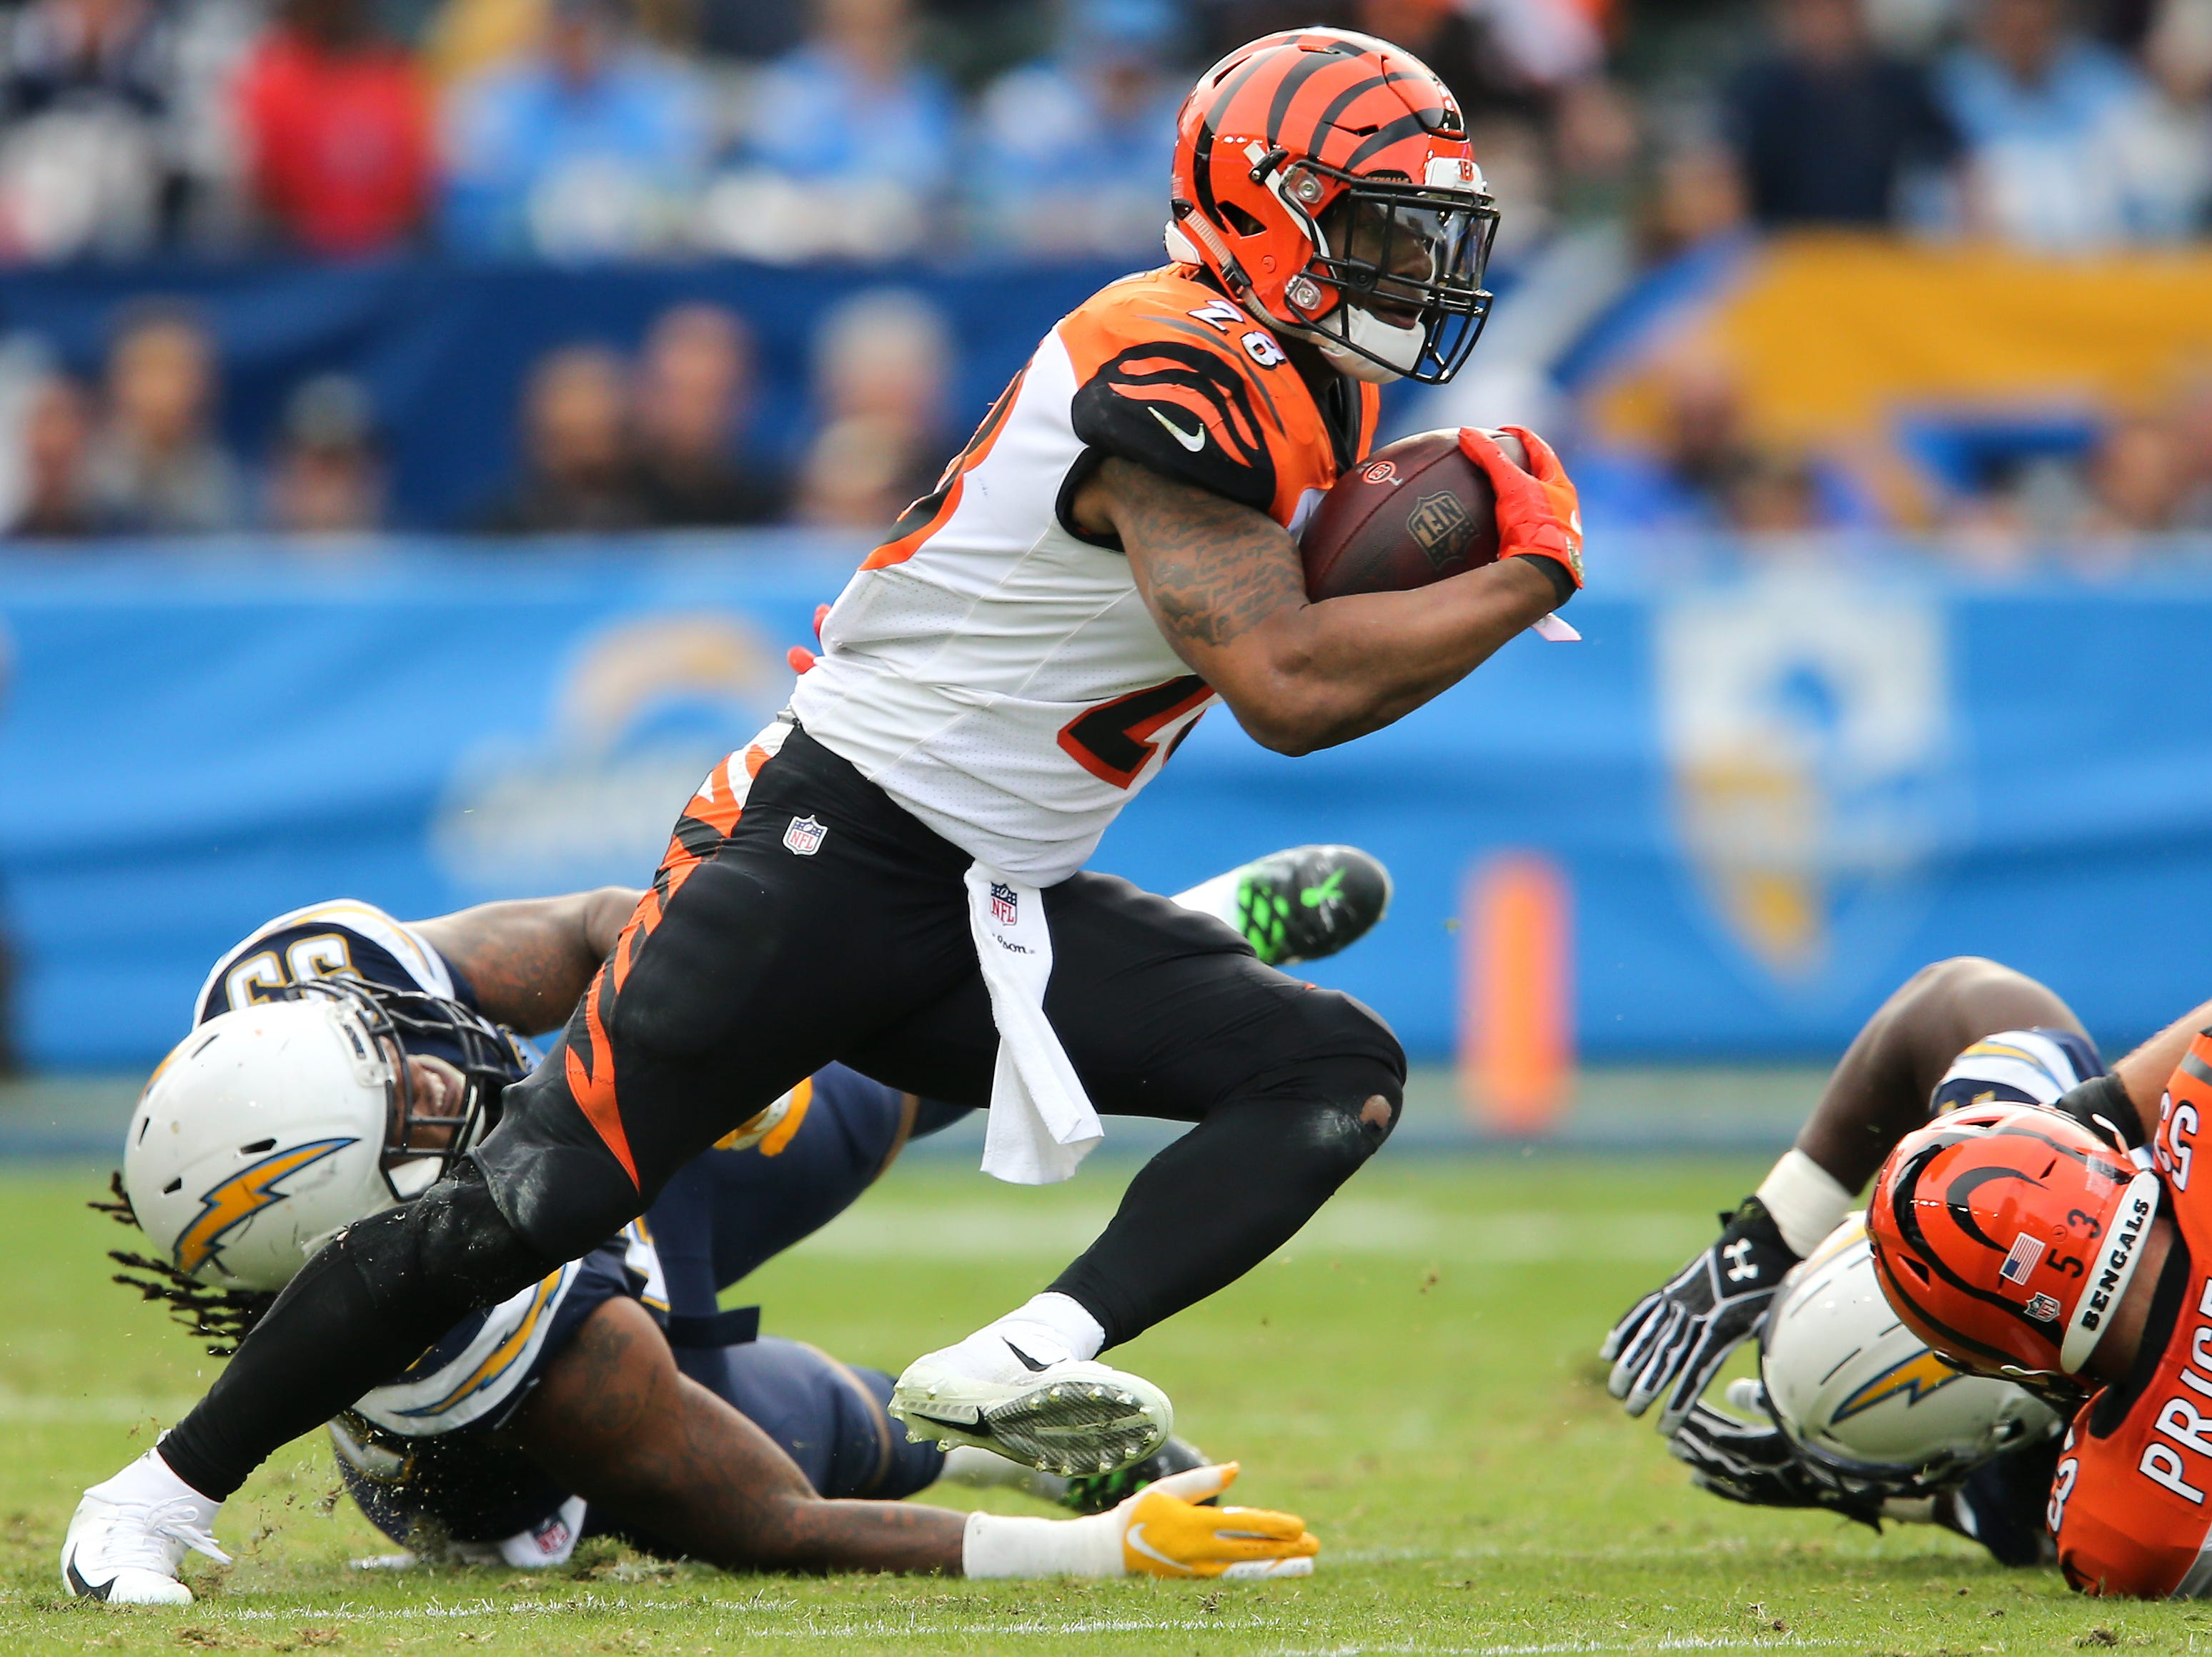 Cincinnati Bengals running back Joe Mixon (28) carries the ball in the second quarter of a Week 14 NFL football game against the Los Angeles Chargers, Sunday, Dec. 9, 2018, at StubHub Center in Carson, California.